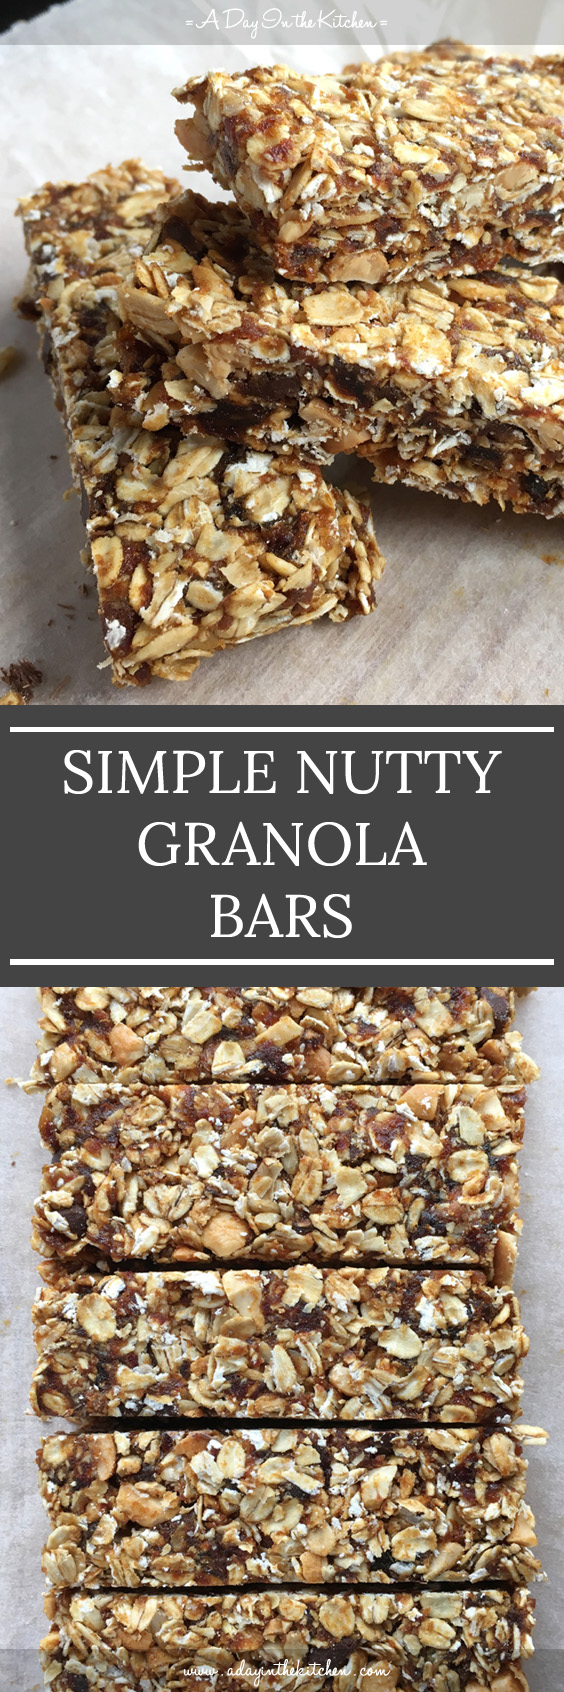 Simple Nutty Granola Bars have no refined sugar and don't require baking for them to set. Easy to make and tasty to eat, they make the perfect snack!